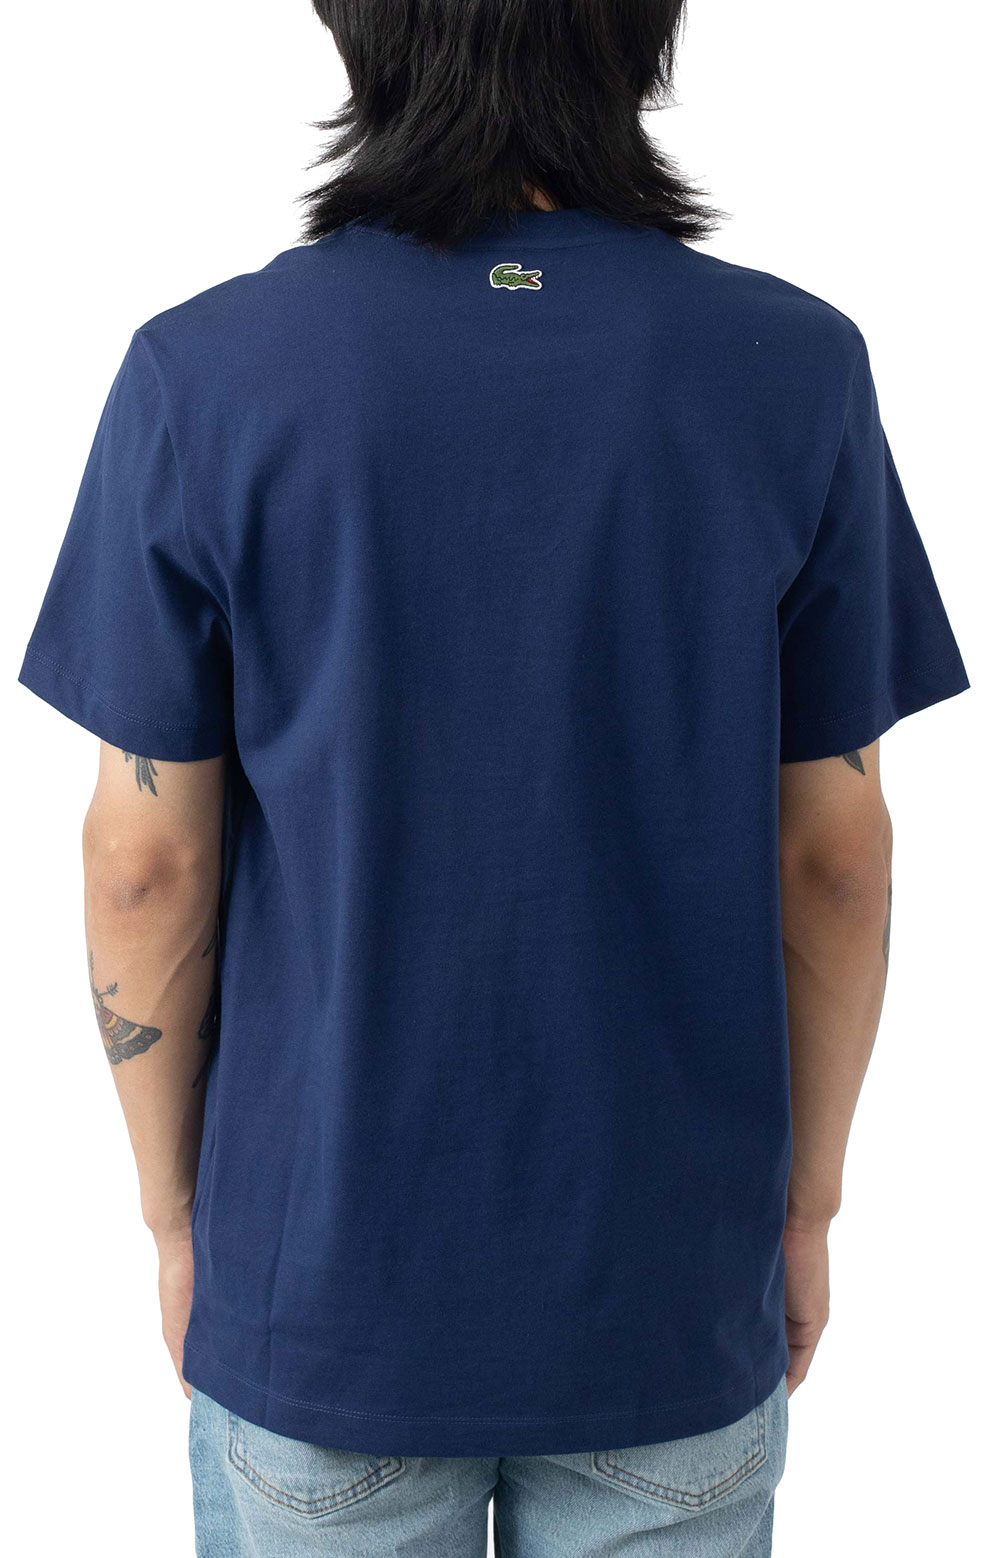 Oversized Lacoste Club Badge Cotton T-Shirt - Navy 3